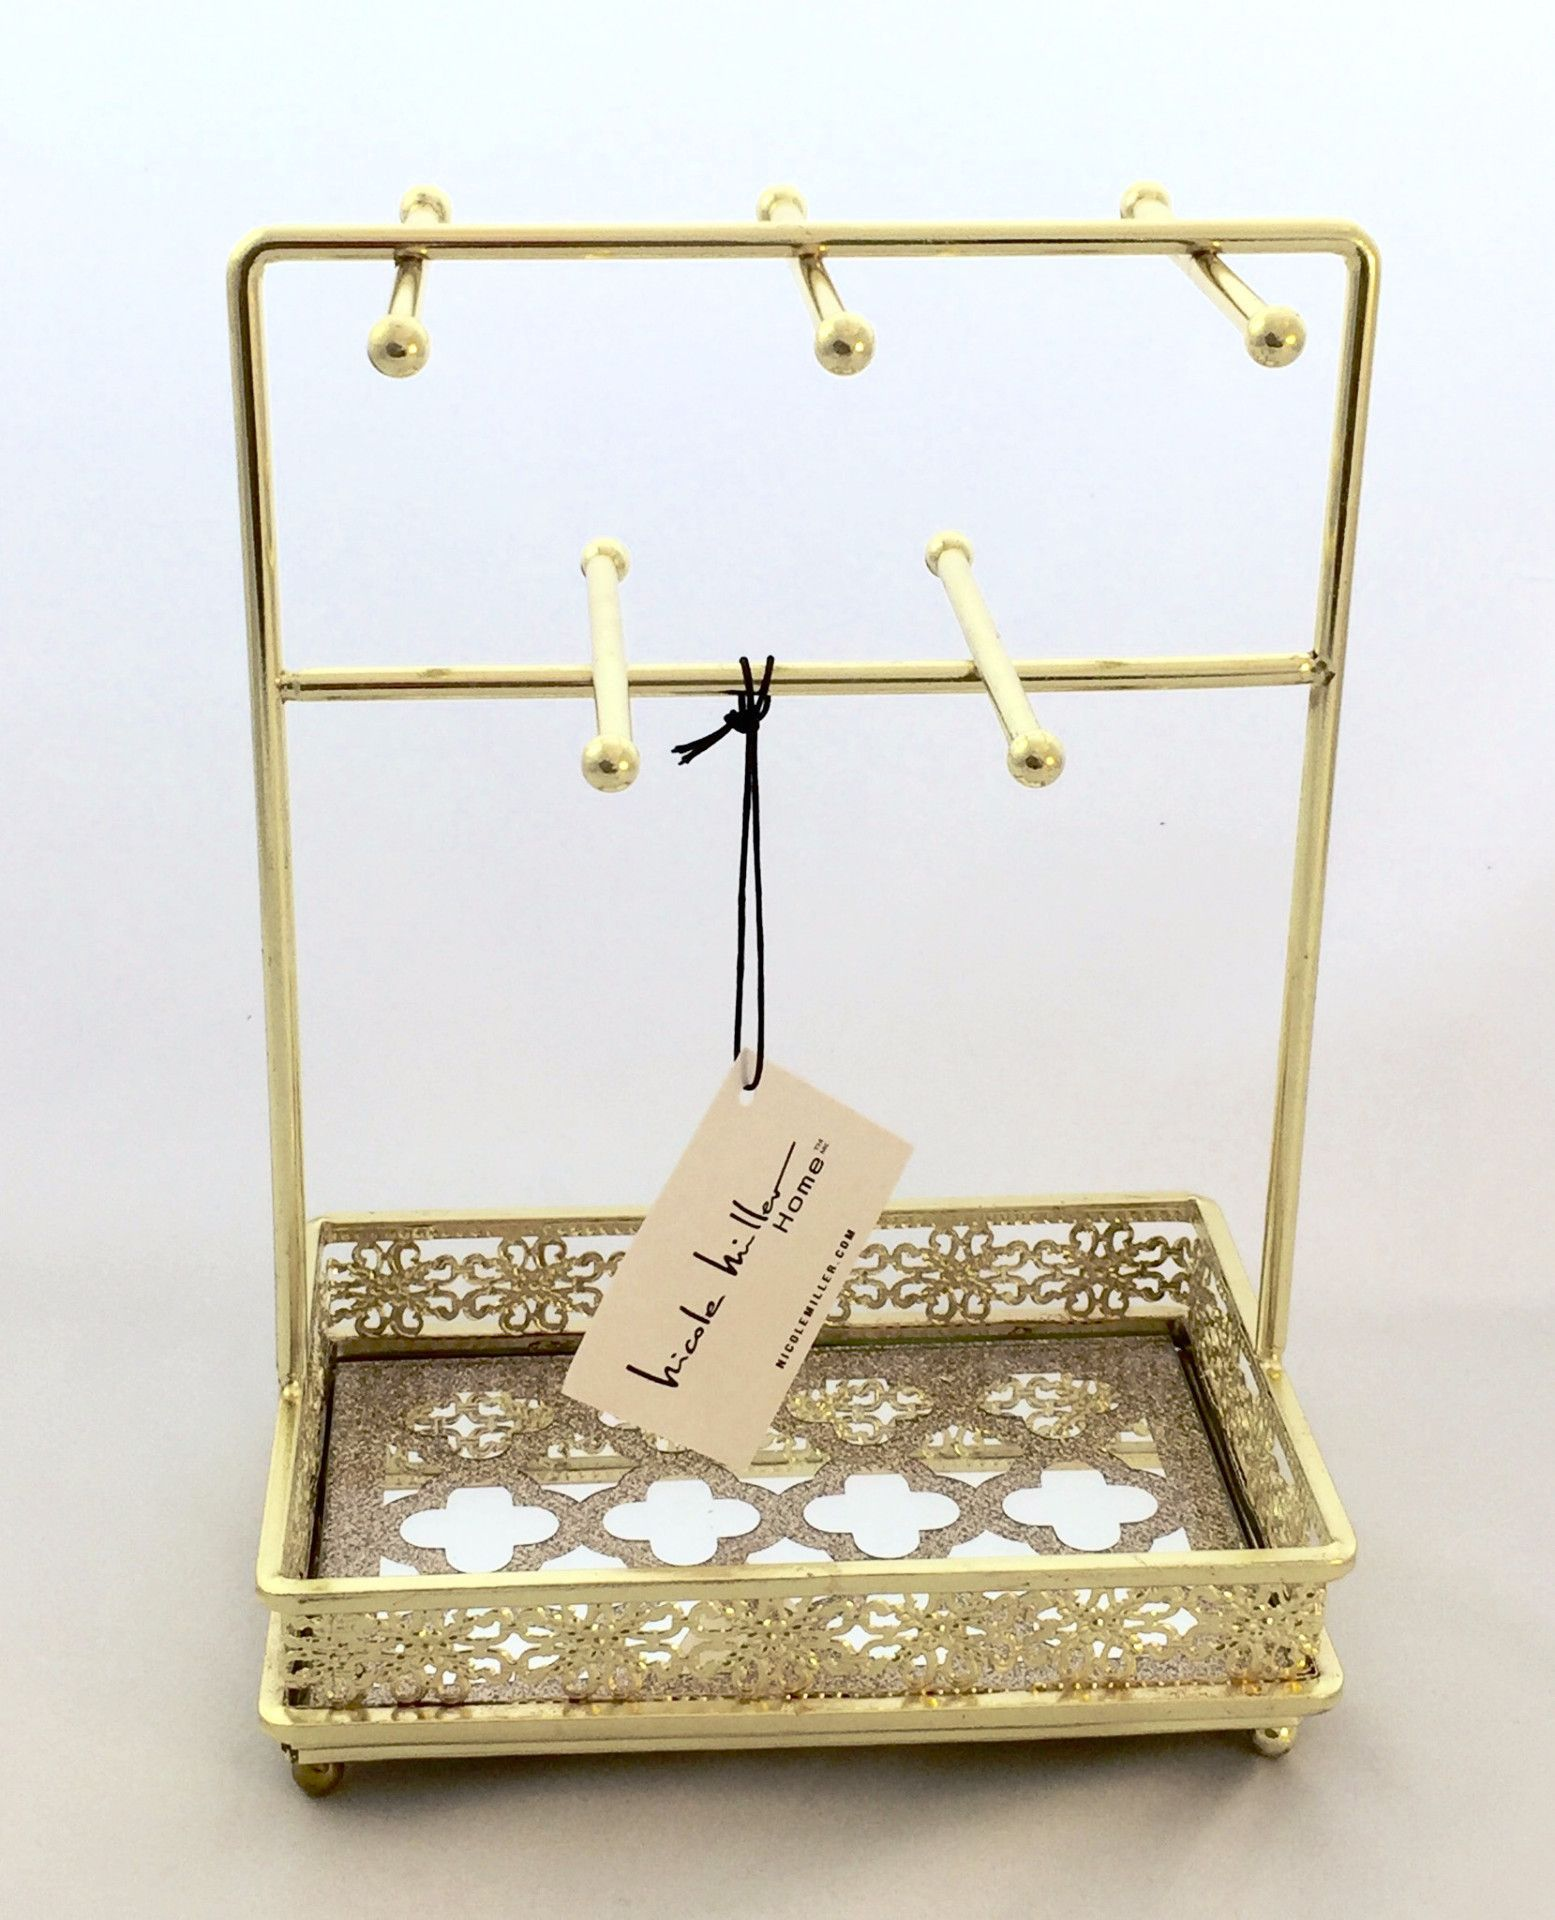 This gold metal framed jewelry stand will make your dresser look